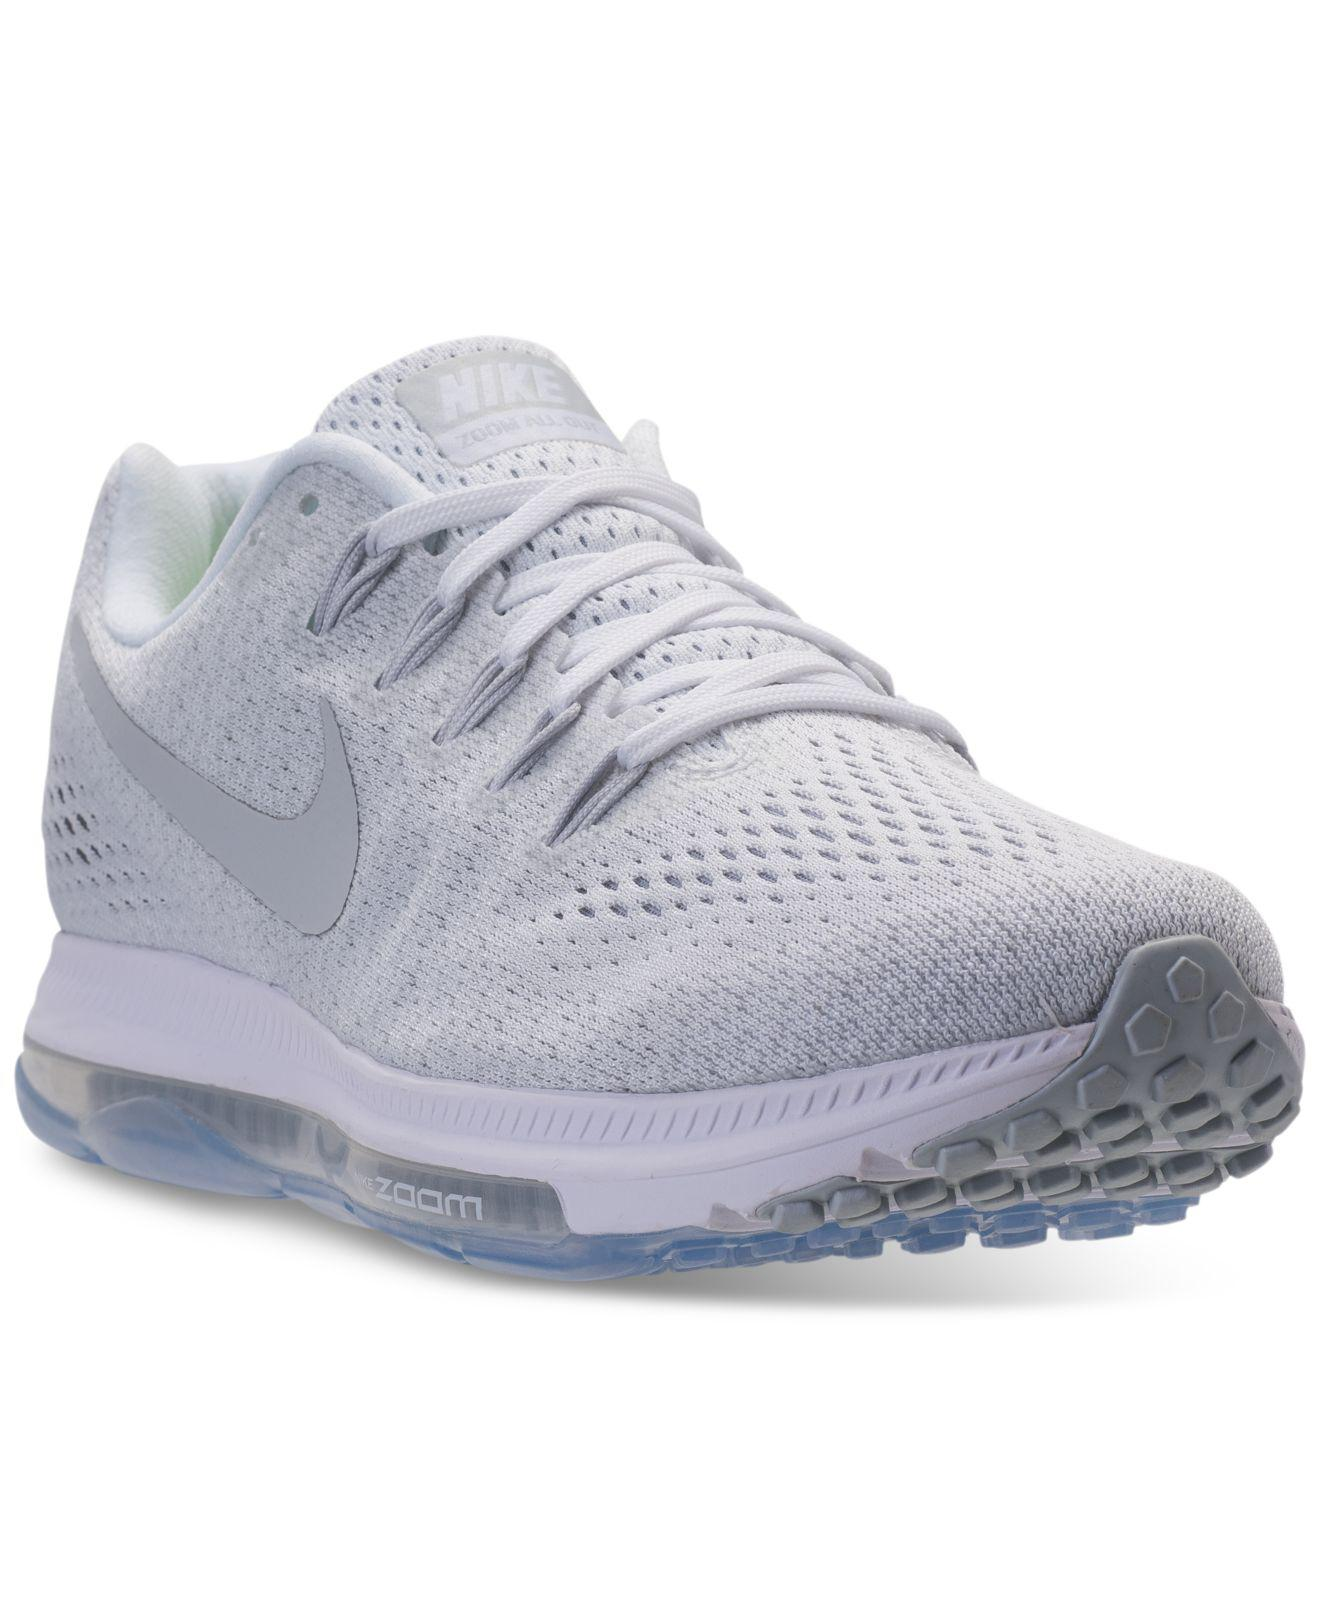 Nike Rubber Women's Zoom All Out Low